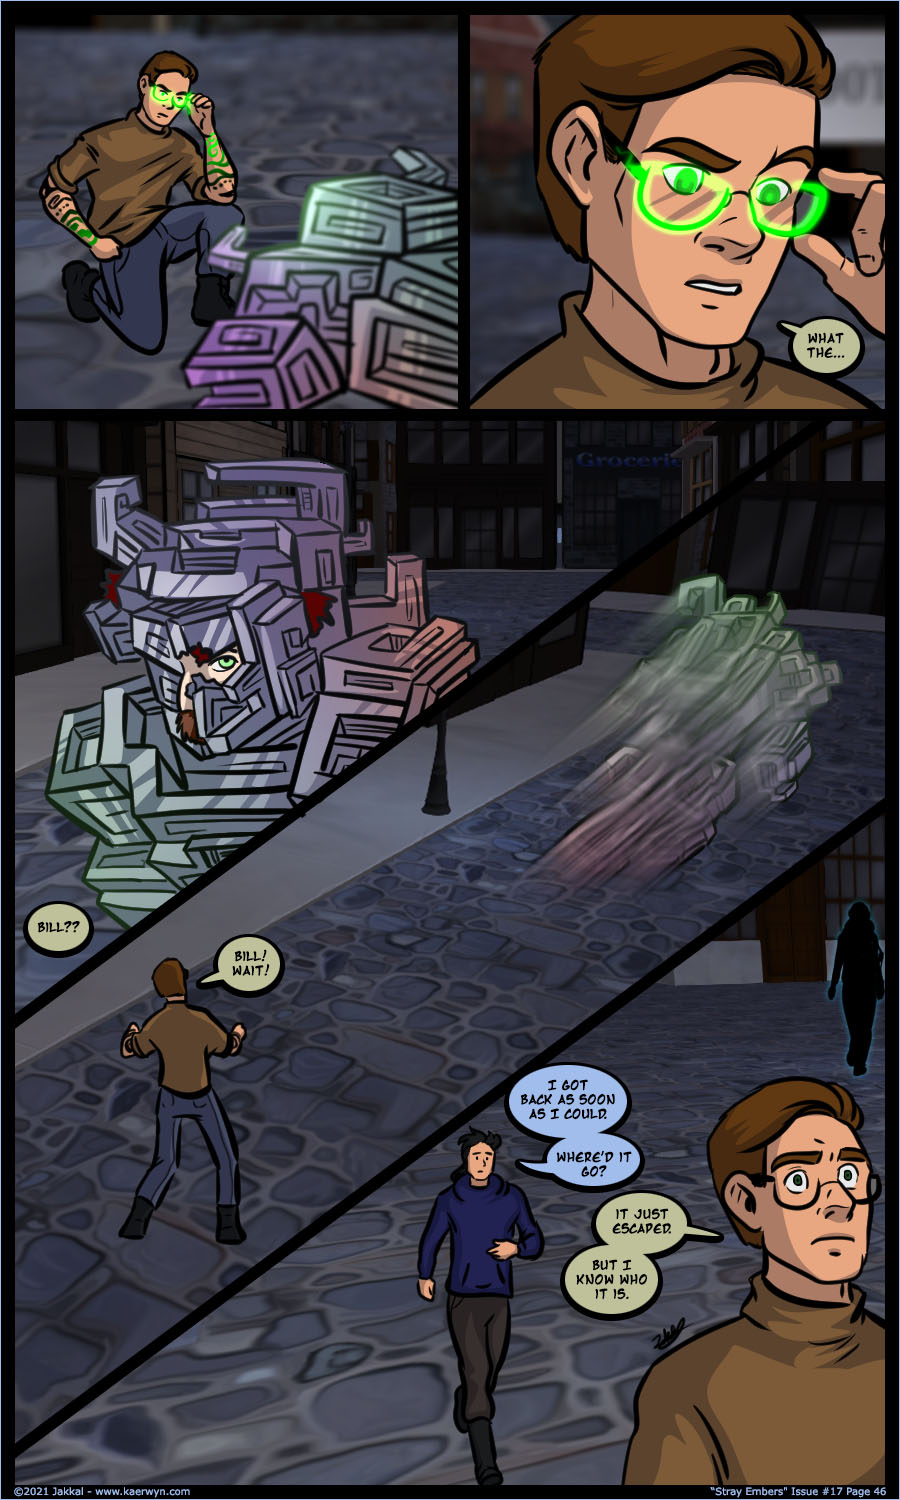 Issue 17 page 46